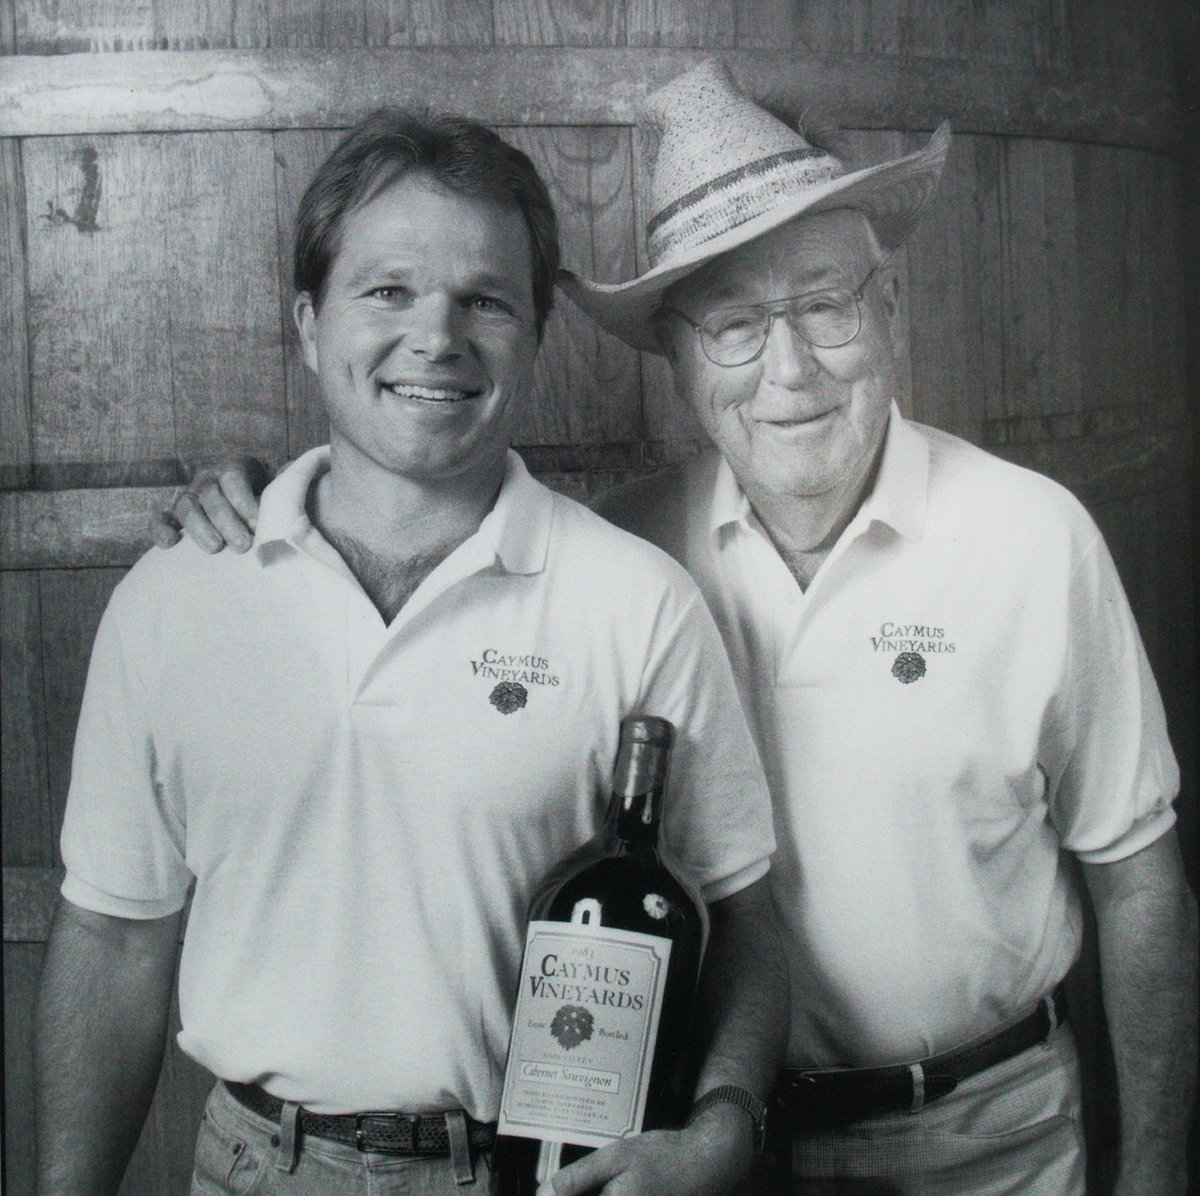 Charlie Wagner Sr. founded Caymus Vineyards back in 1972 and has incredible success with his Cabernet Sauvignon wines since that time.